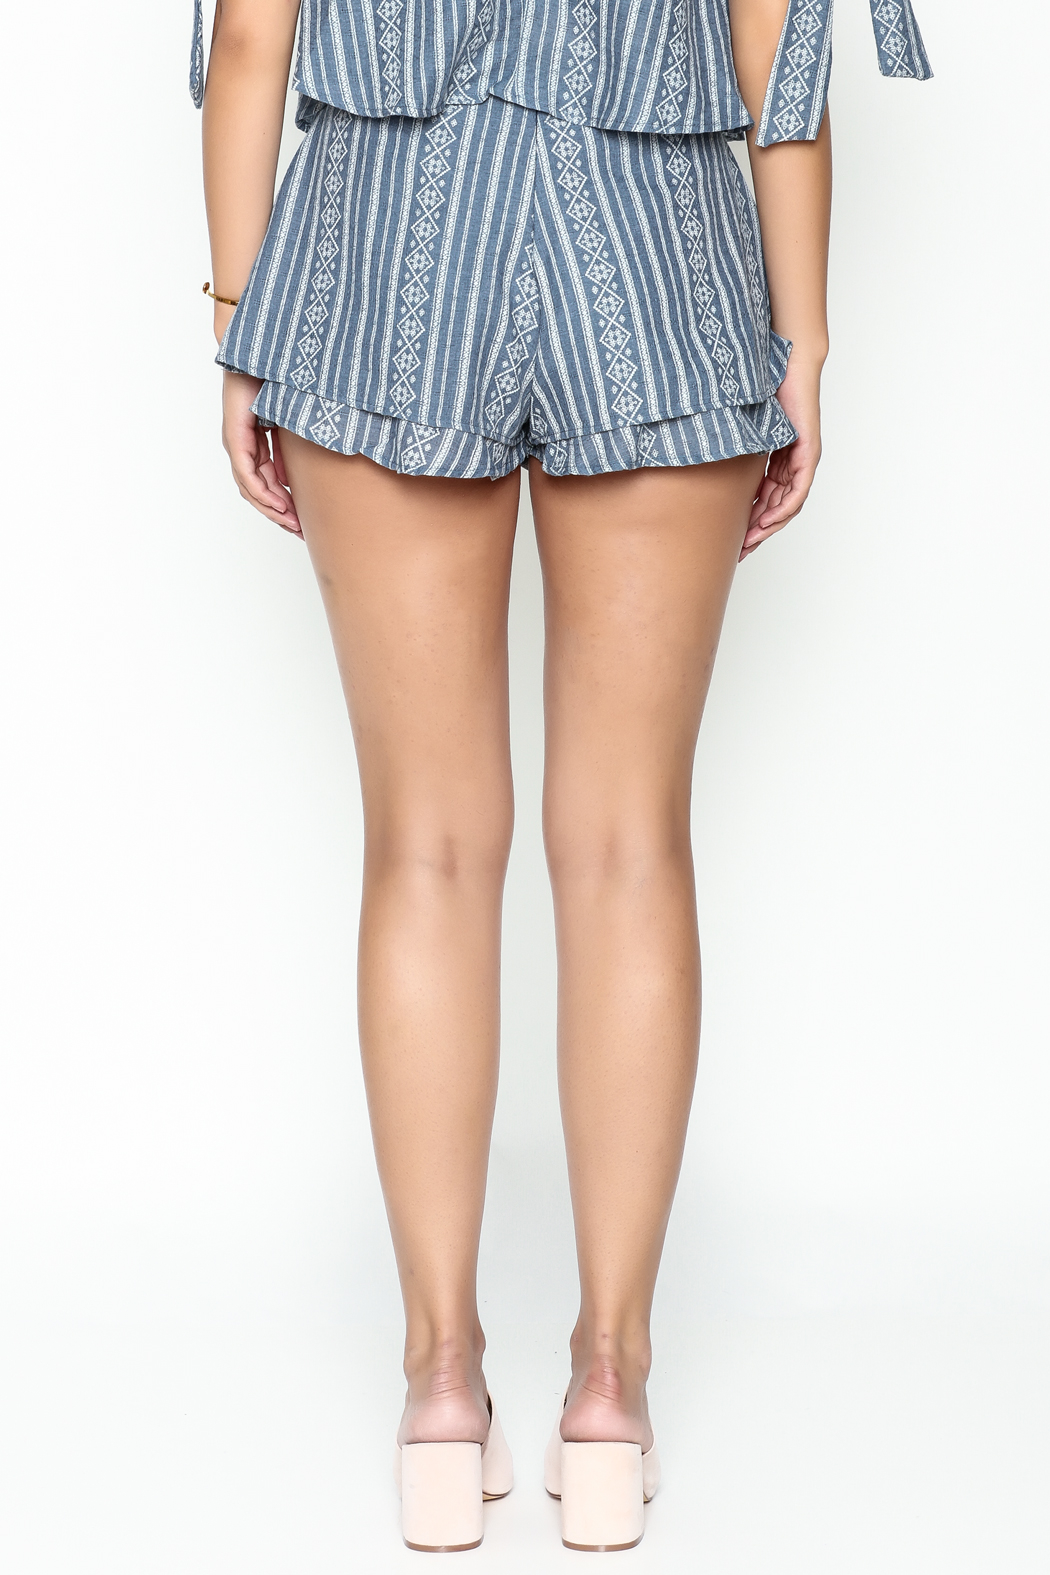 SAGE THE LABEL Blue Print Shorts - Back Cropped Image